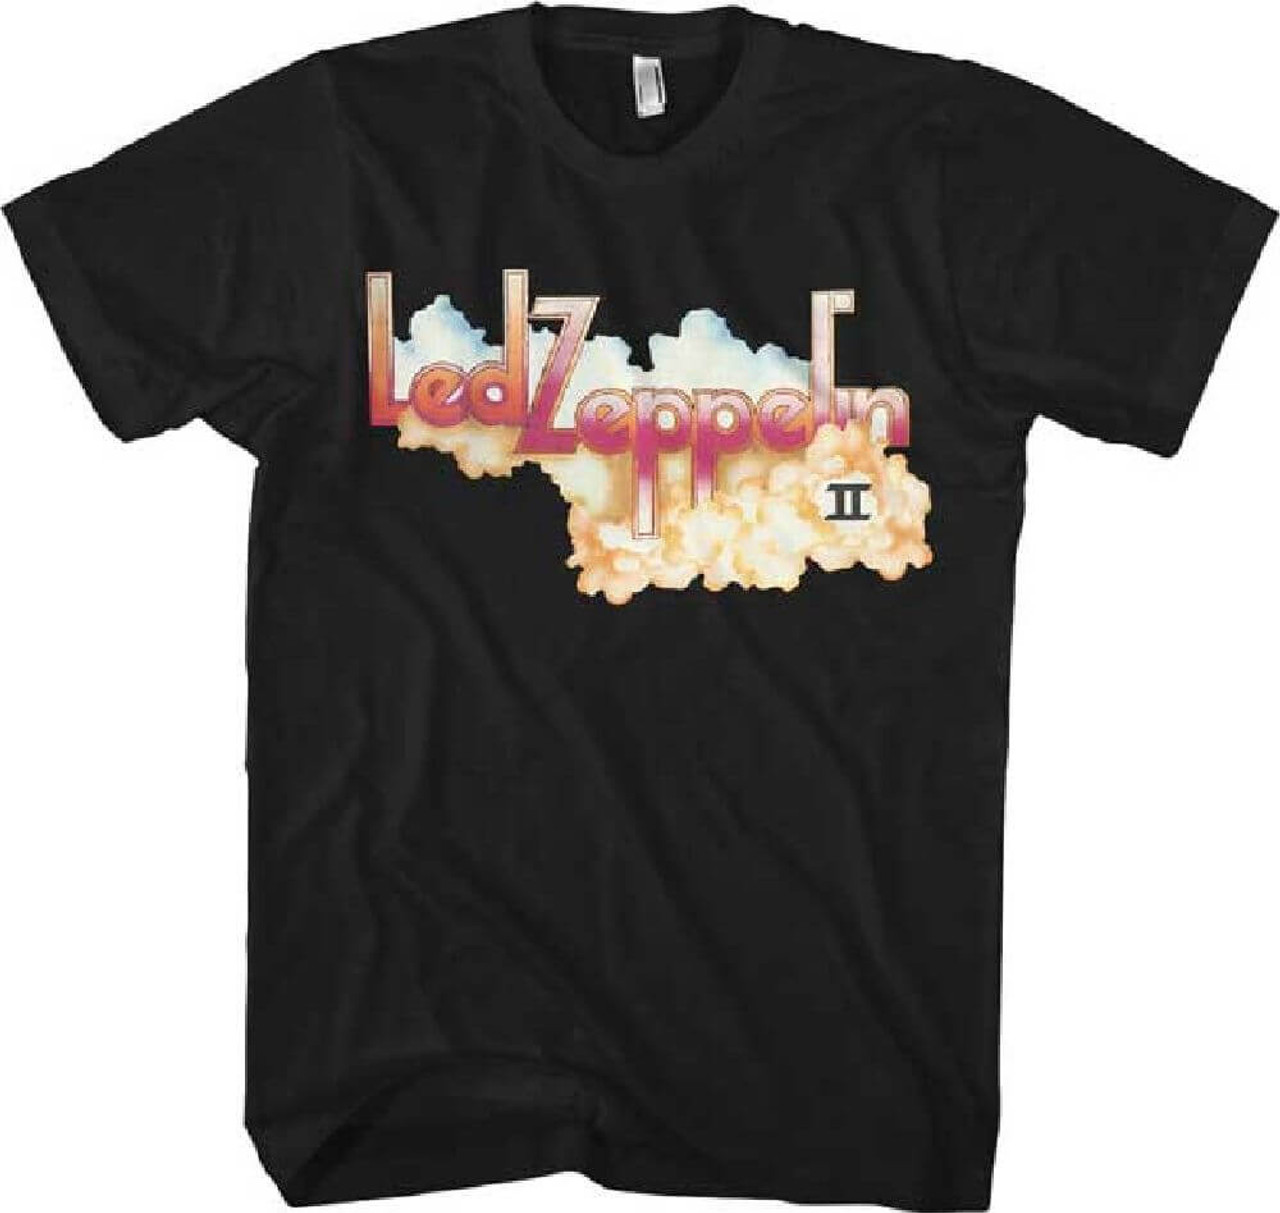 Led Zeppelin T-shirt - Led Zeppelin II Album Cover Artwork | Men's Black  Shirt